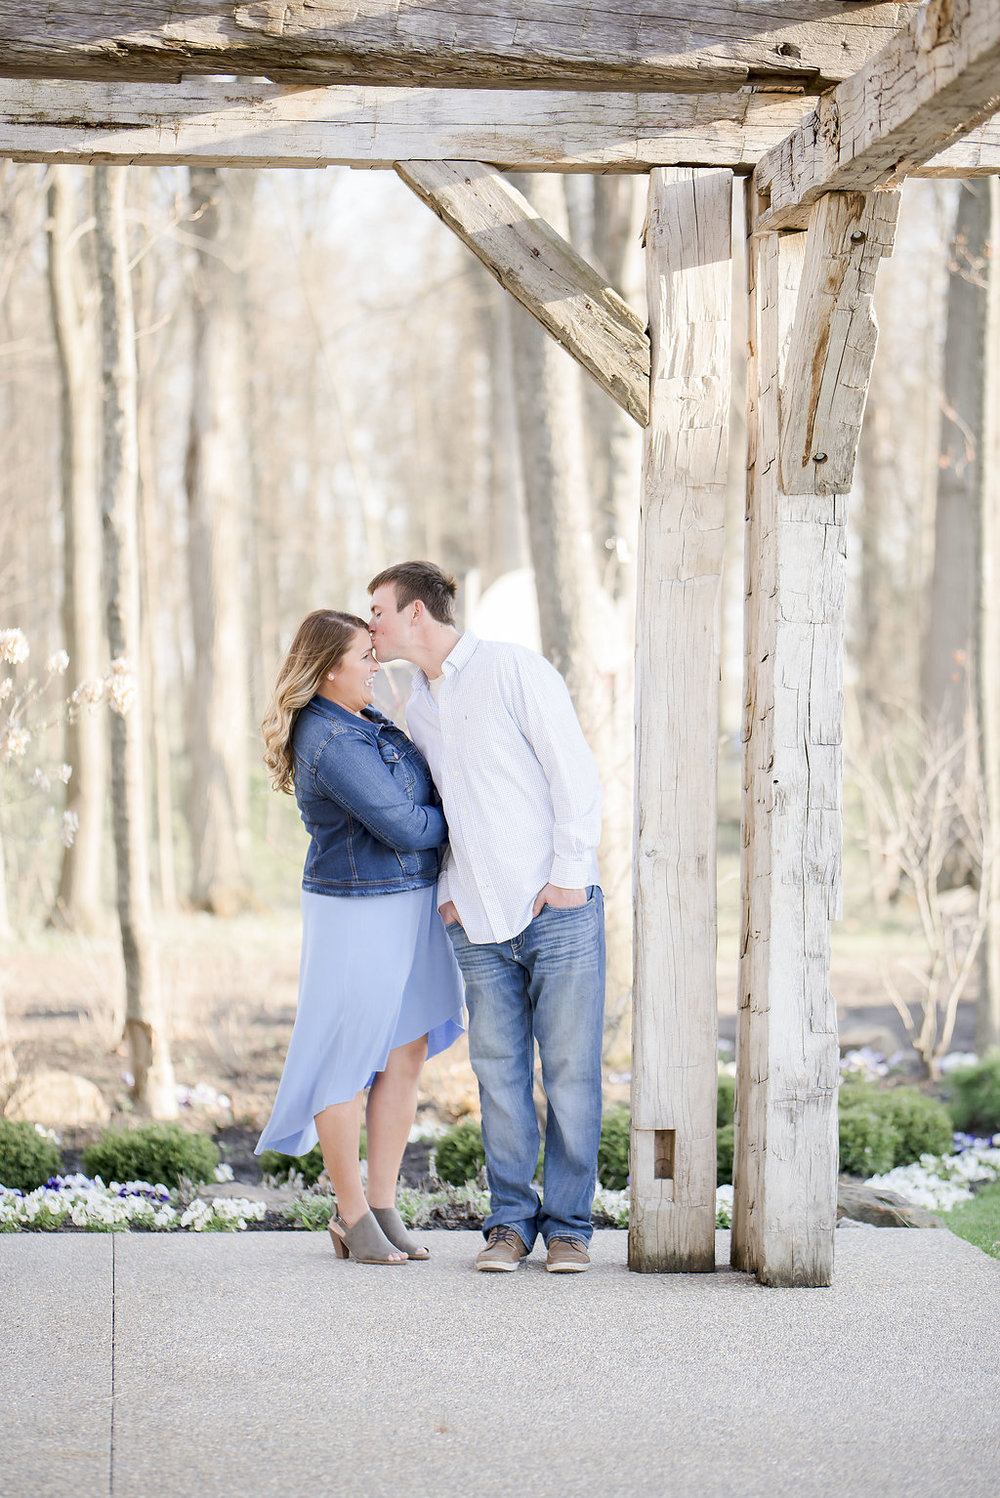 Chloe & Jared (by Maria McKenzie Photography)